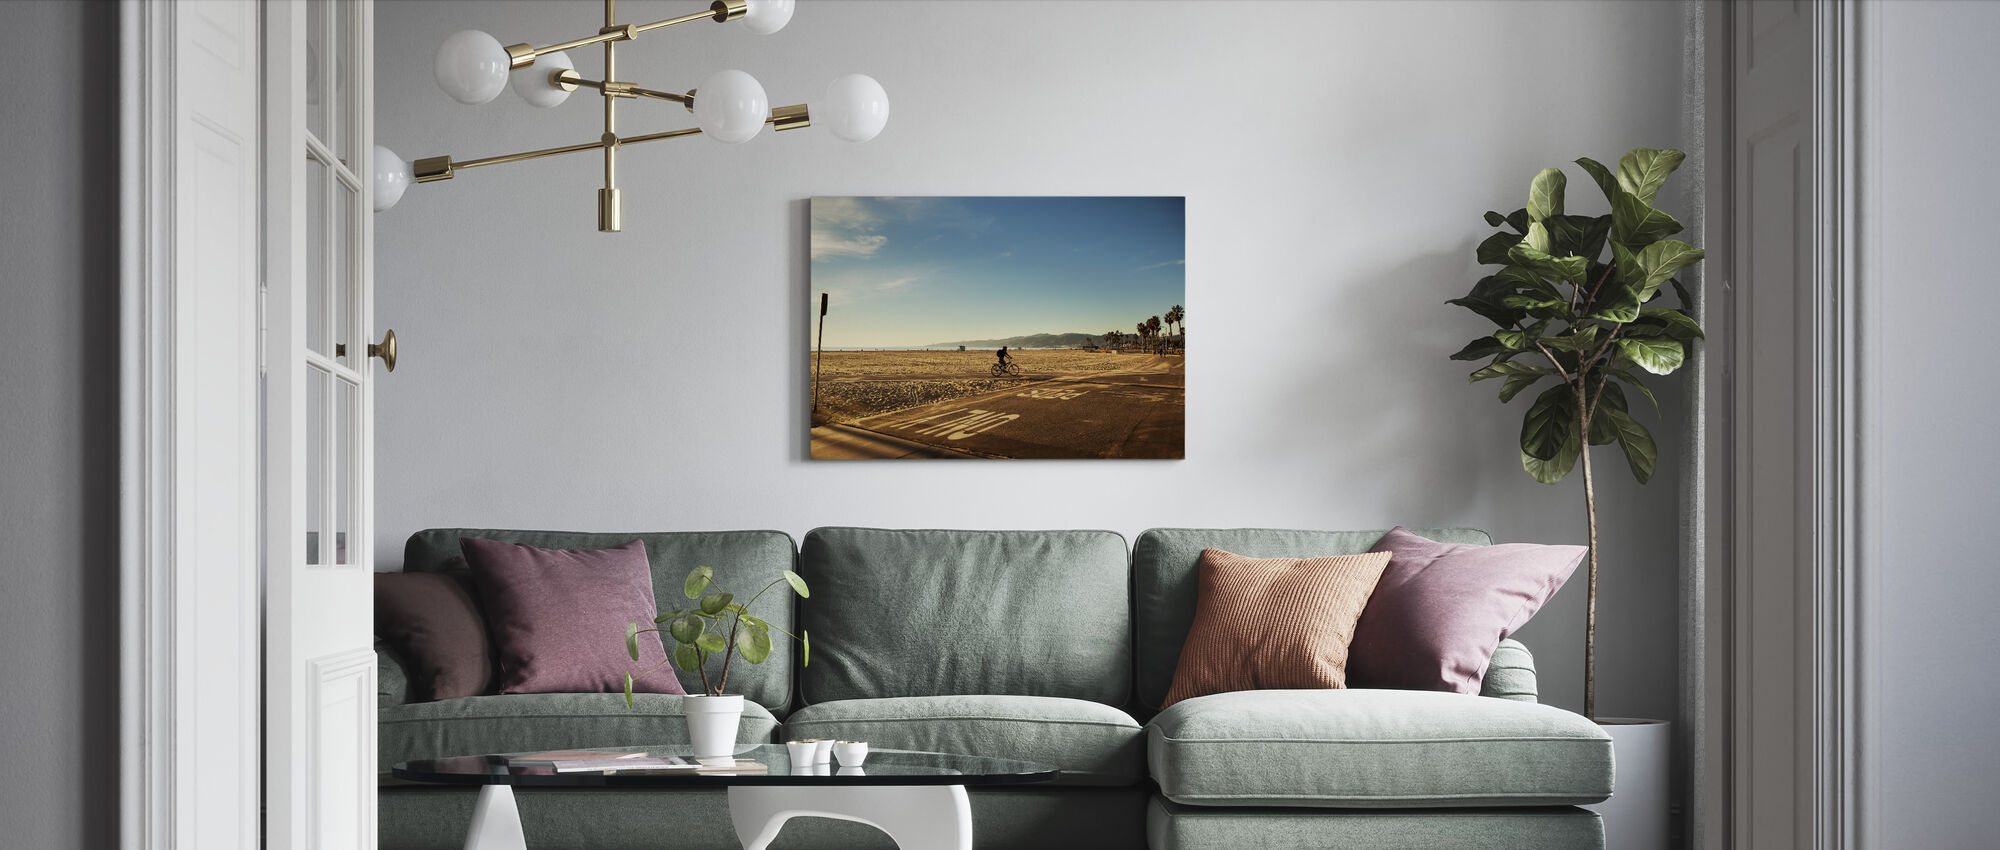 Venice Beach, Los Angeles - Canvas print - Living Room